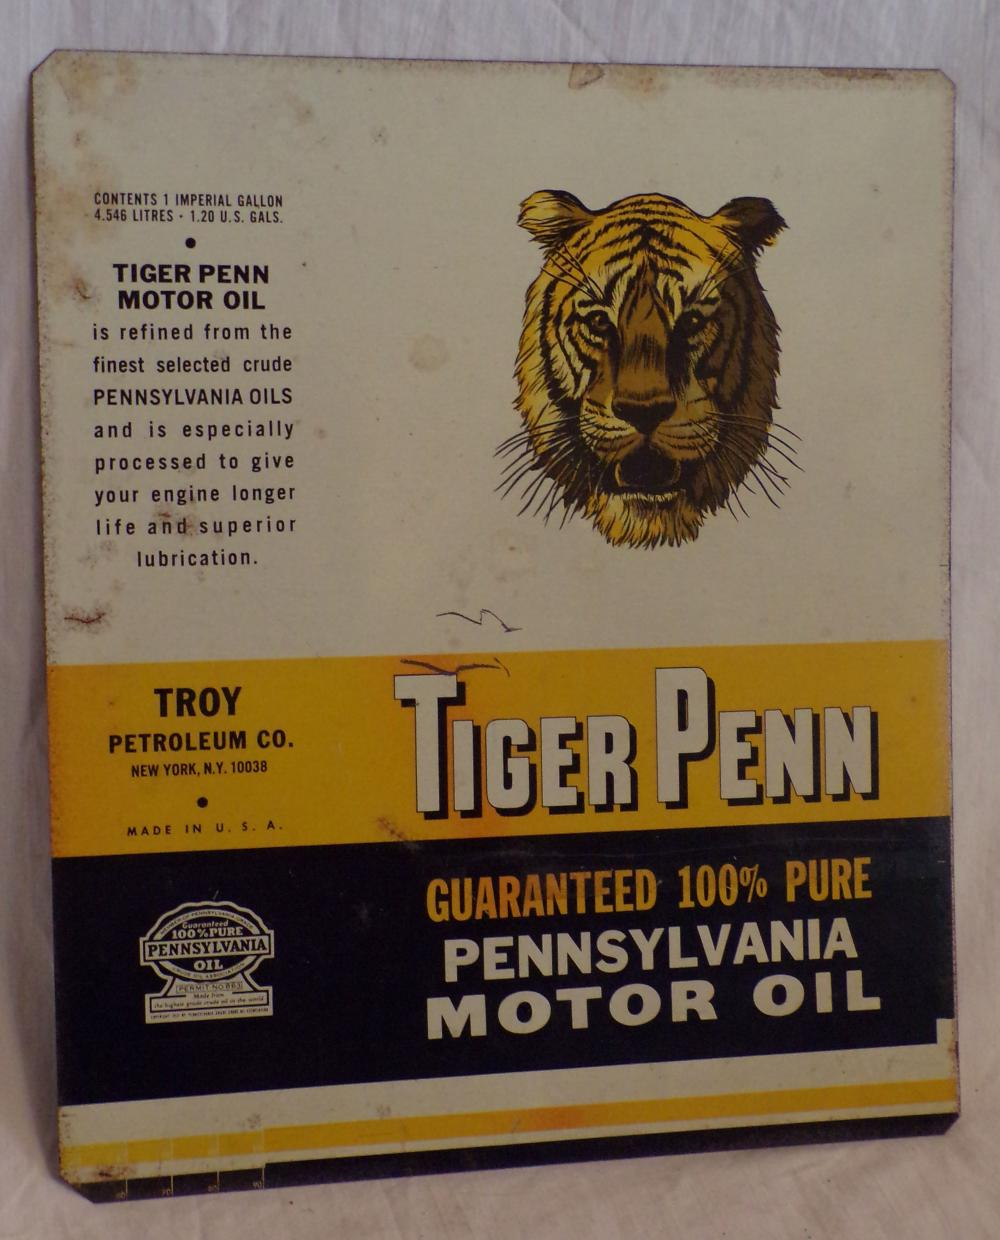 Tin Advertising Sign for Tiger Penn, Pennsylvania Motor Oil, Troy, Petroleum Co., New York, NY